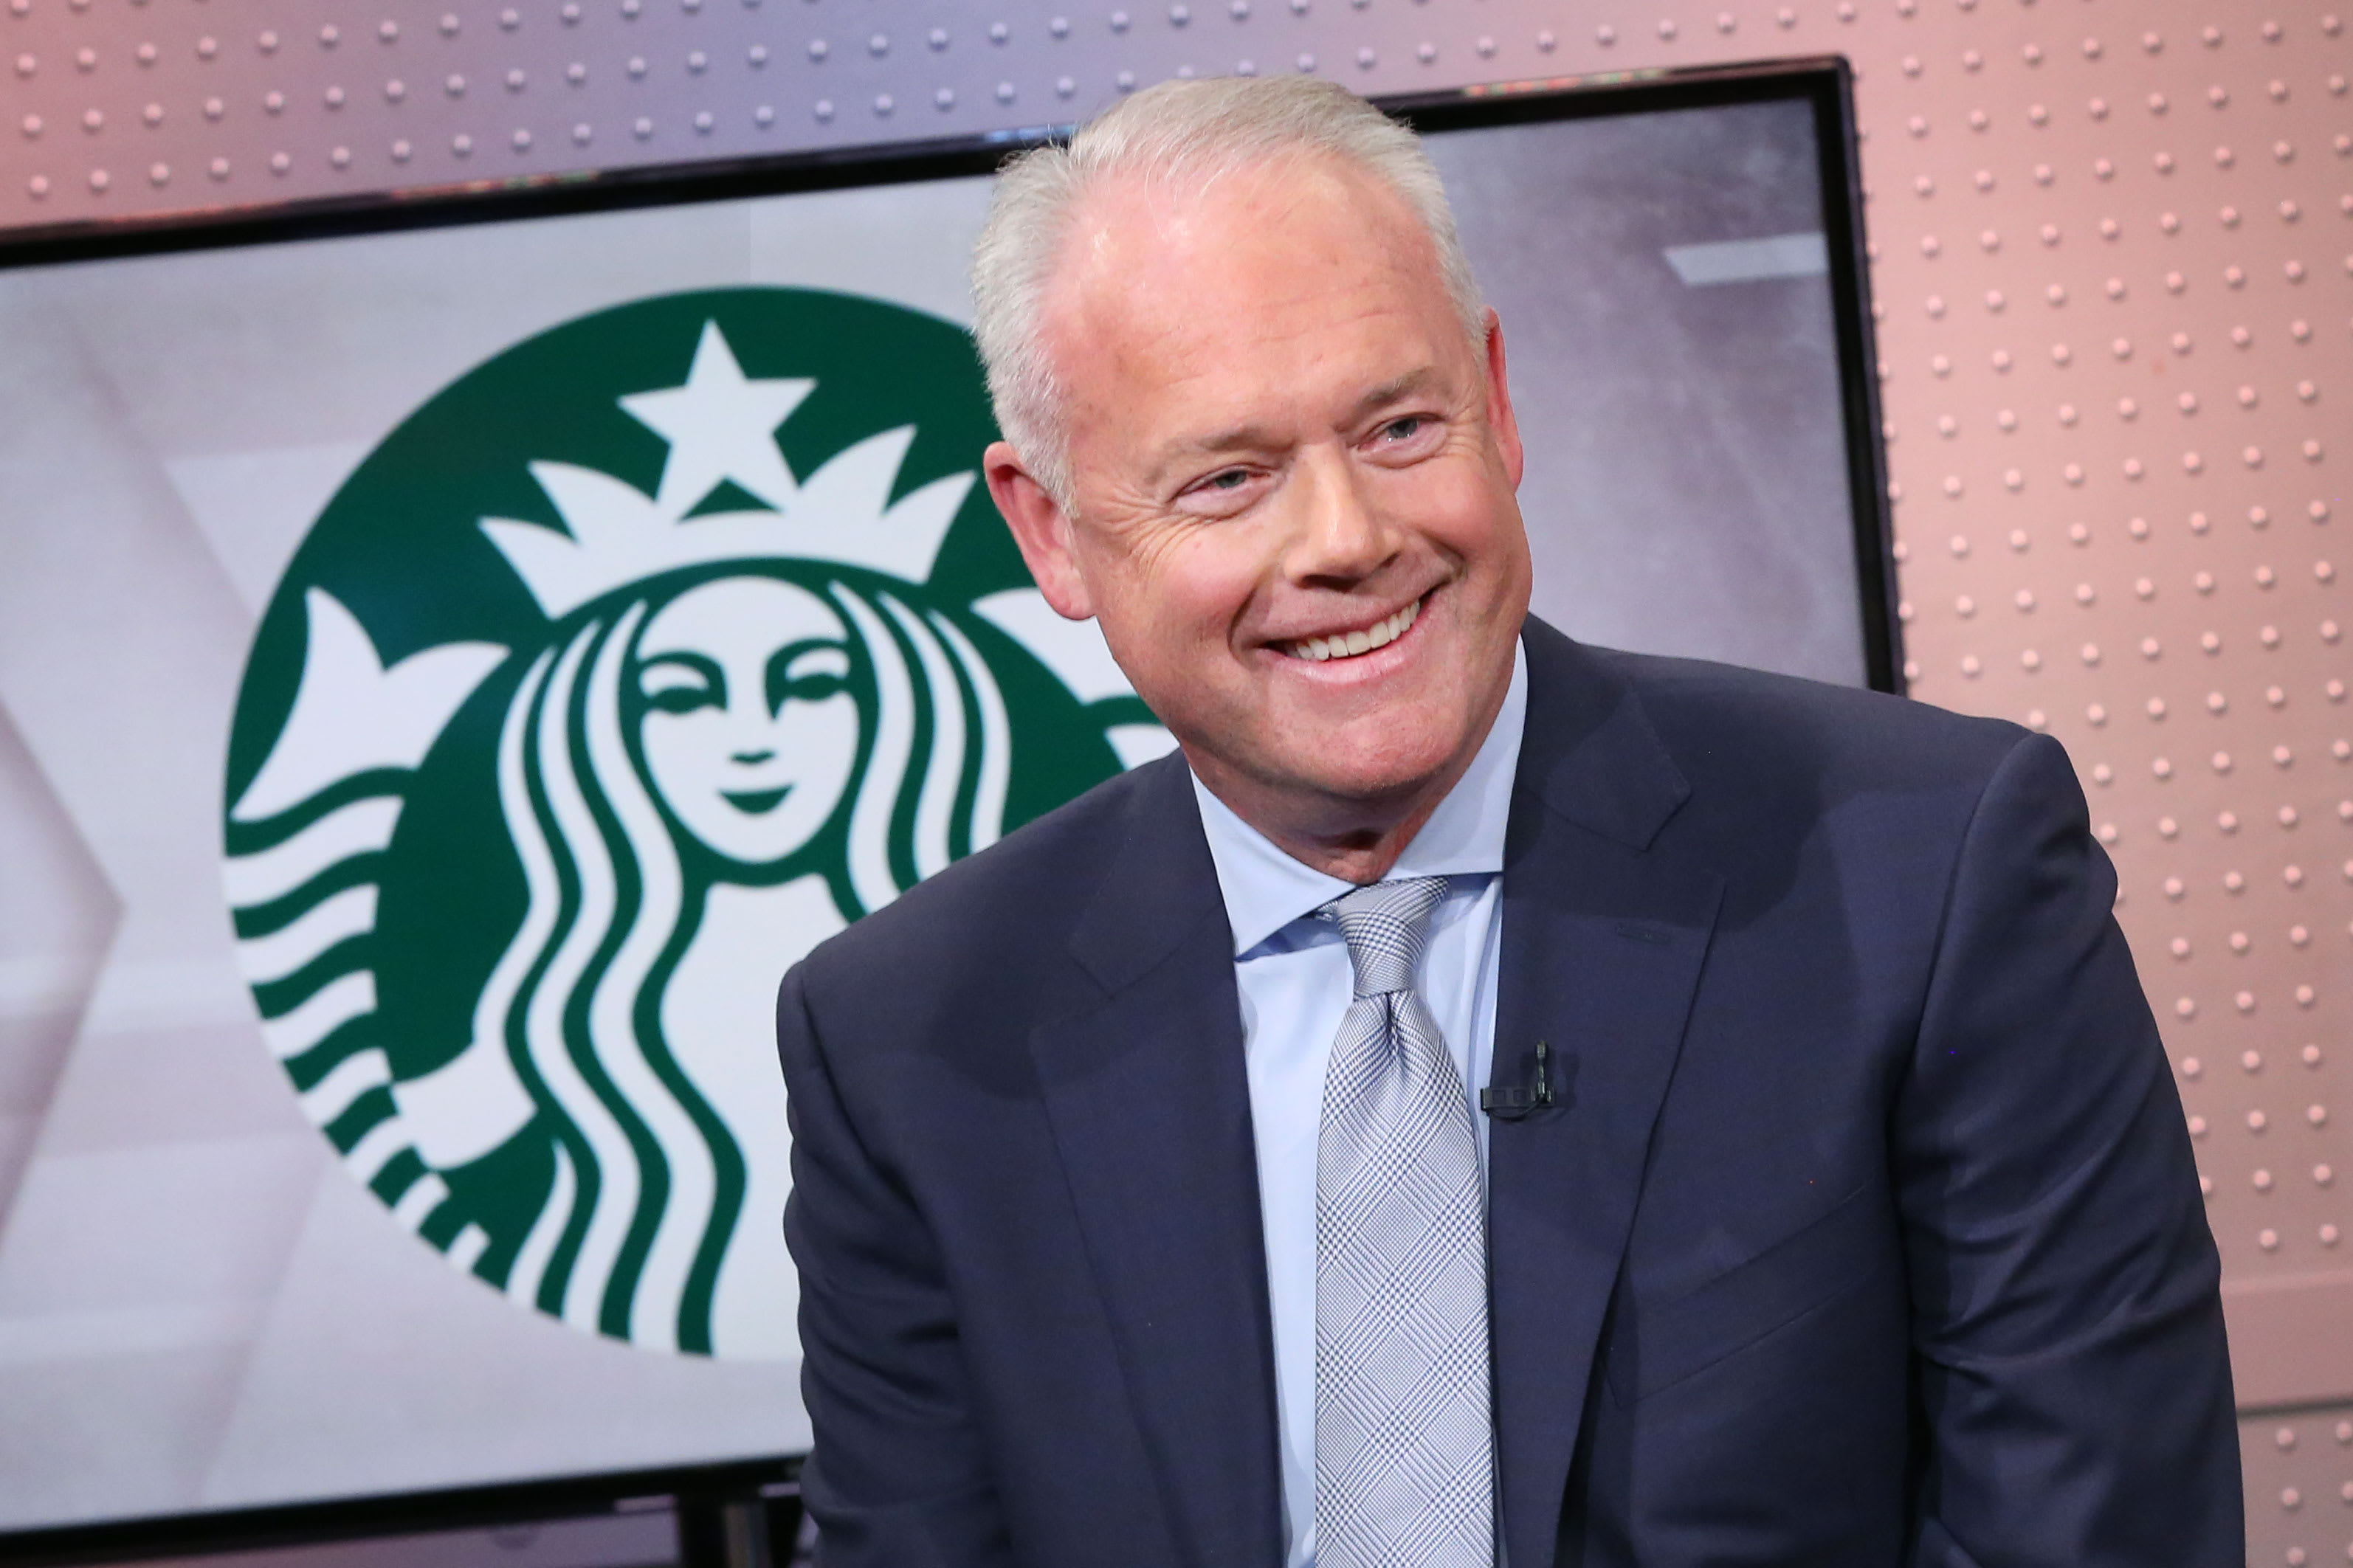 Here's what to expect from Starbucks earnings